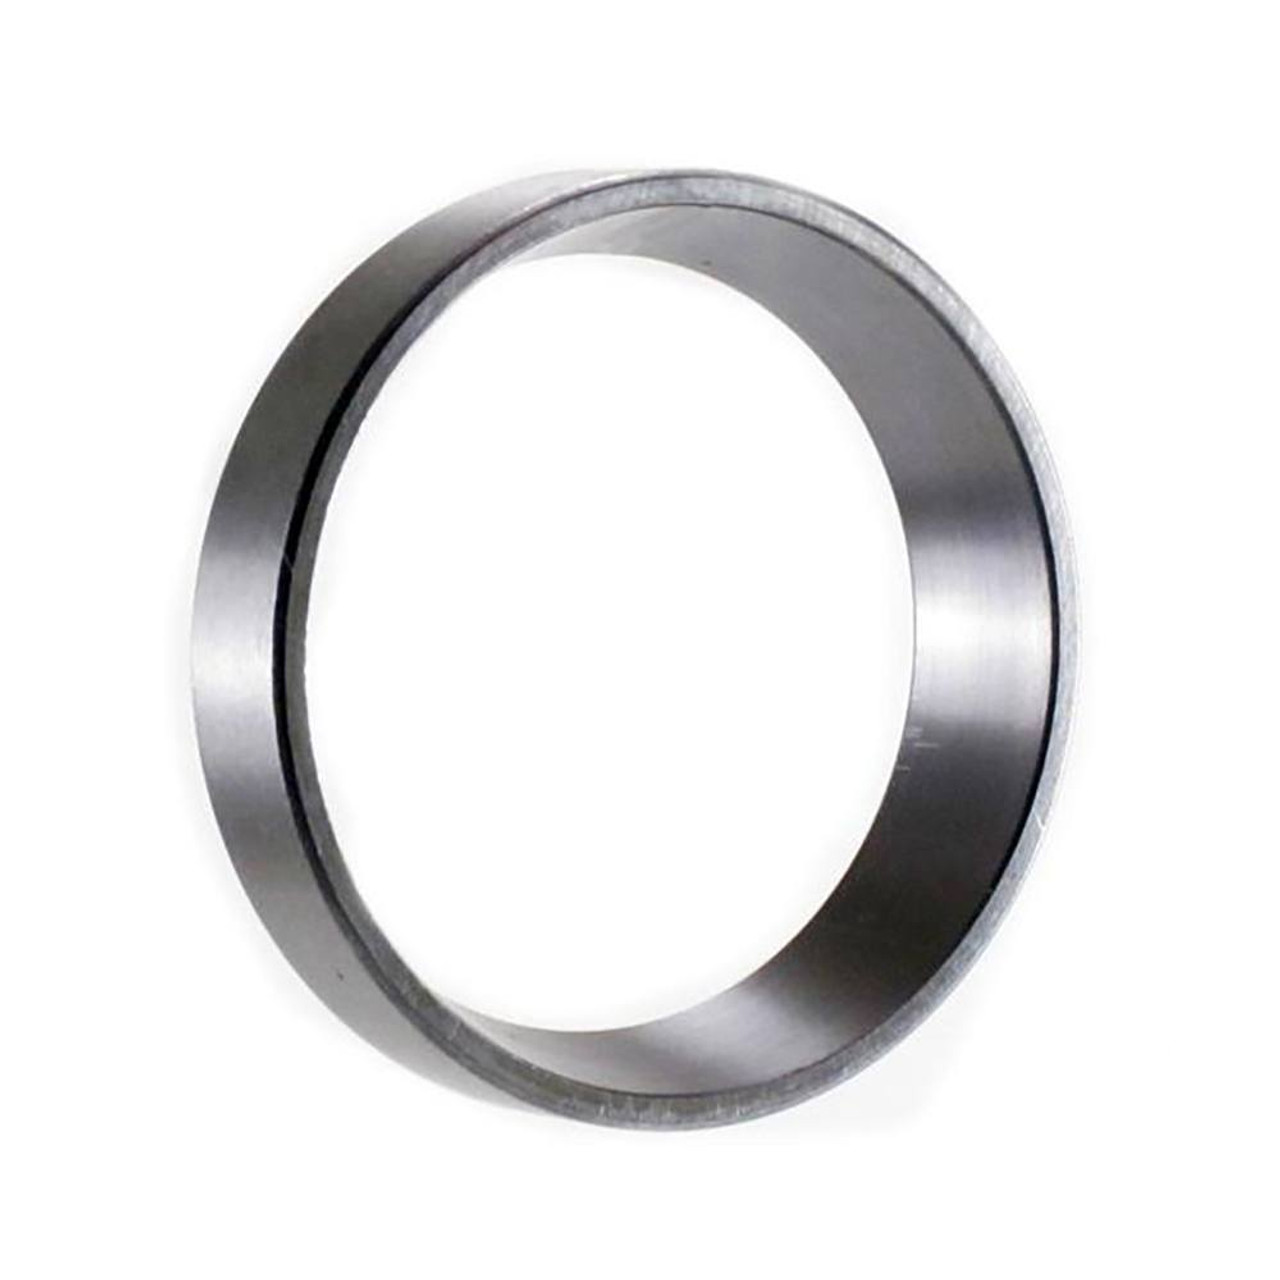 L68111 Replacement Race for trailer hub bearings